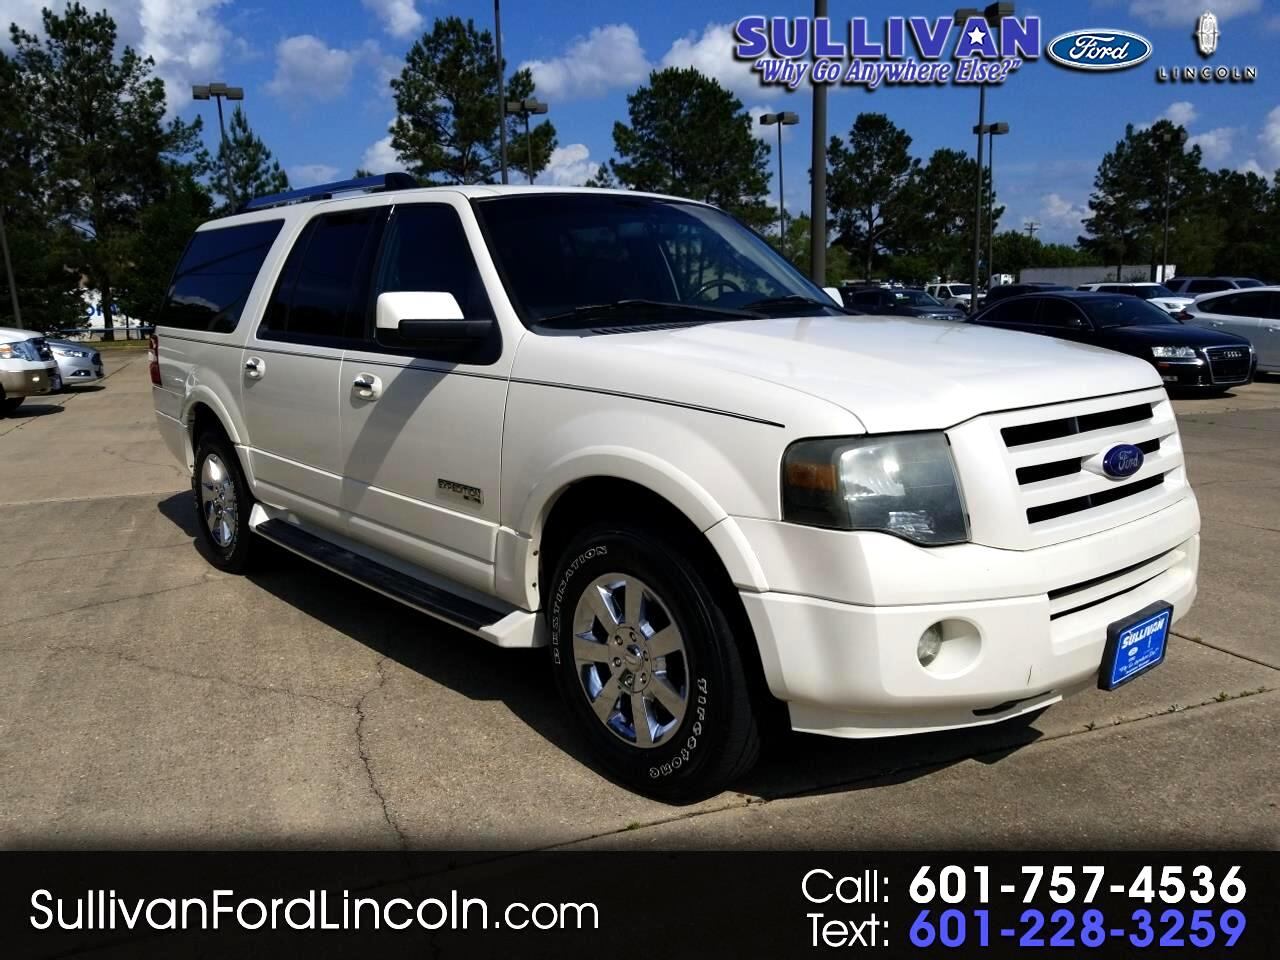 2008 Ford Expedition EL 2WD 4dr Limited